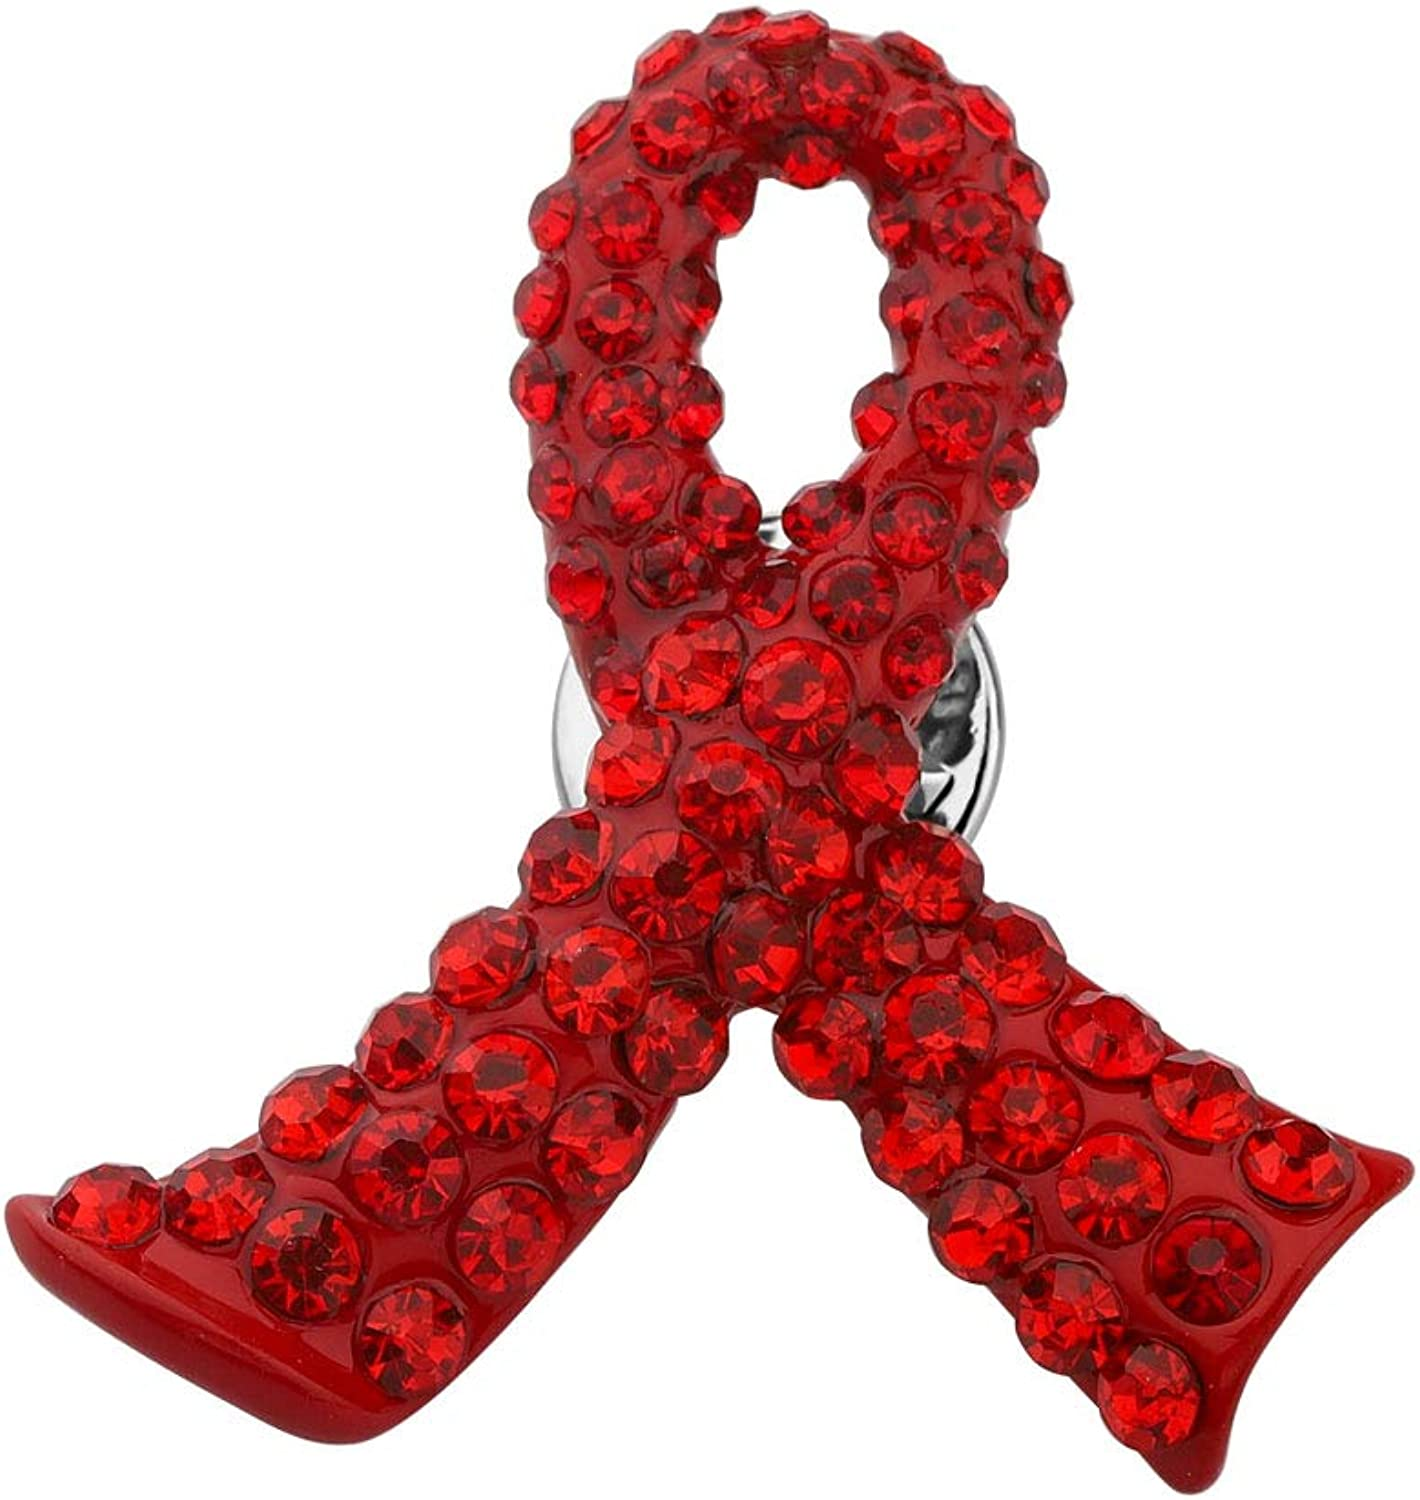 Red BR CENWA AIDS HIV Awareness Jewelry Red Awareness Ribbon Bracelet AIDS Awareness HIV Heart Disease Survivor Gift Be Stronger Than The Storm Bracelet